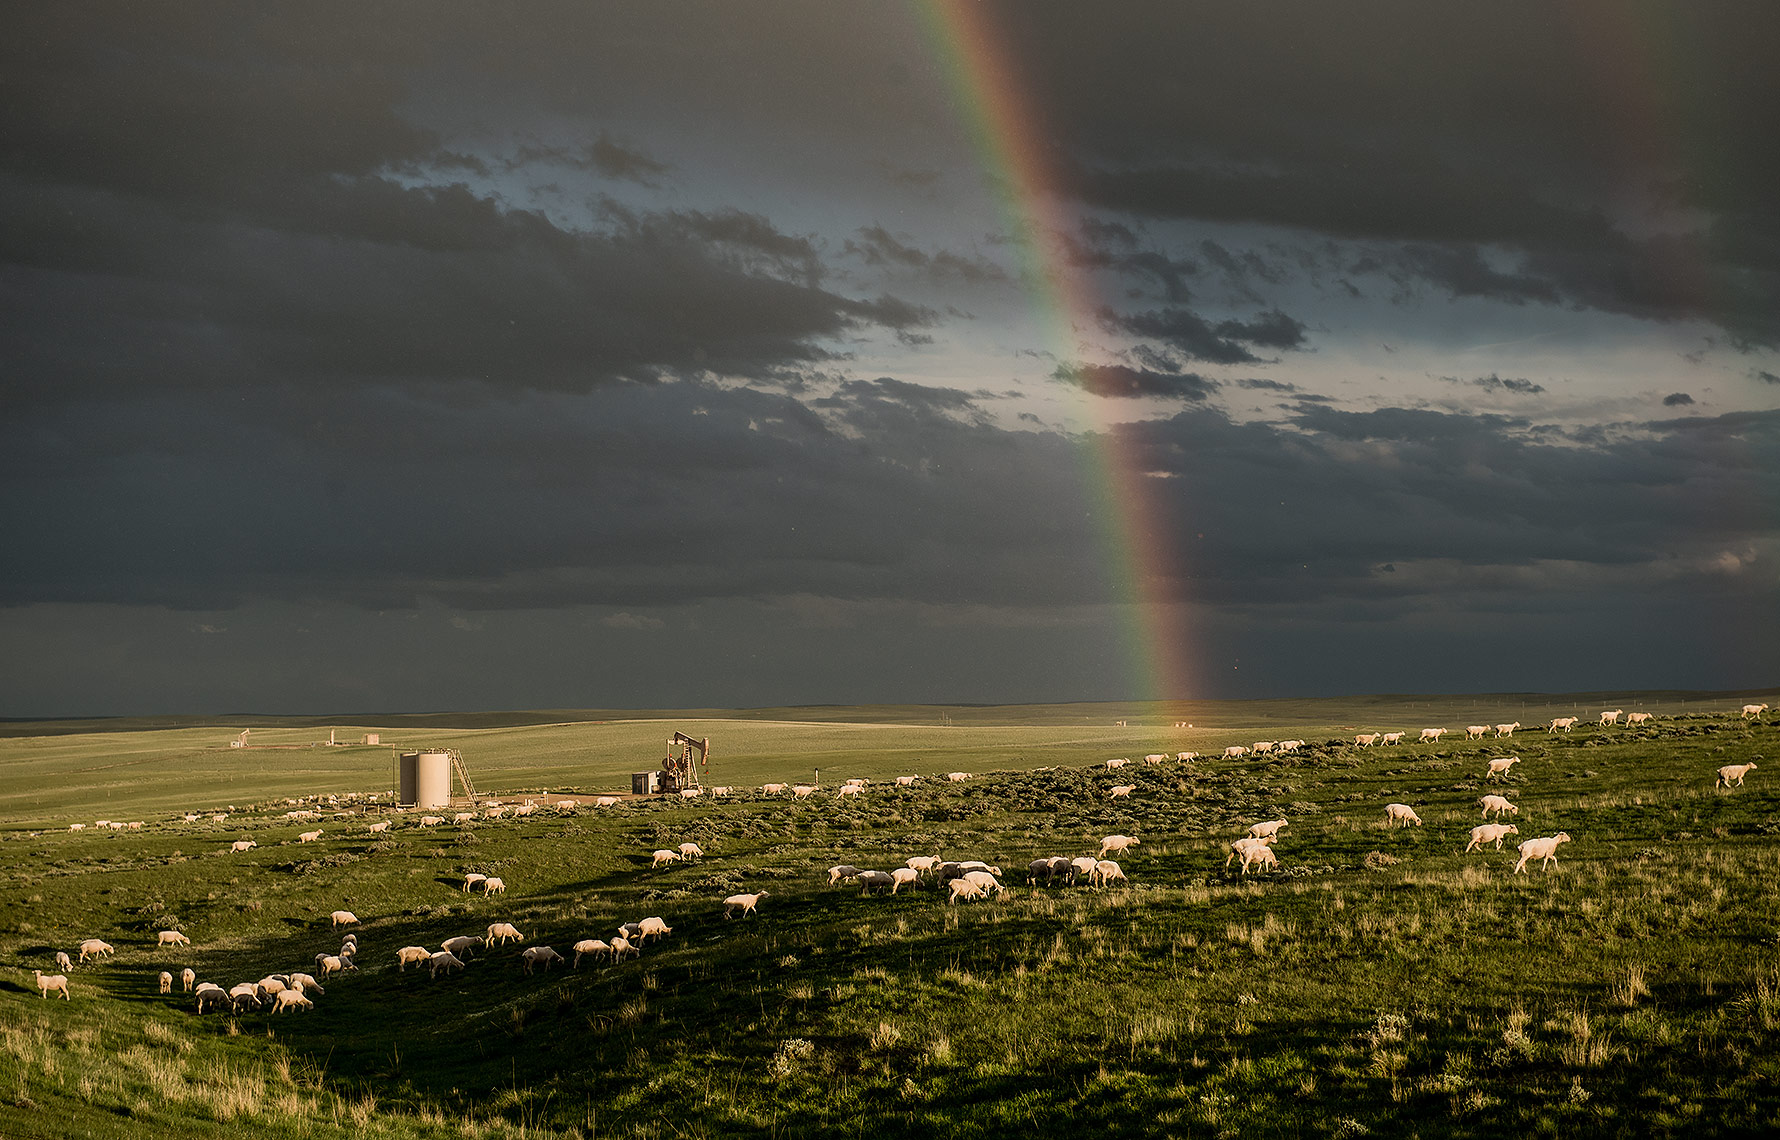 Rainbow and Sheep Herd on Oilfield